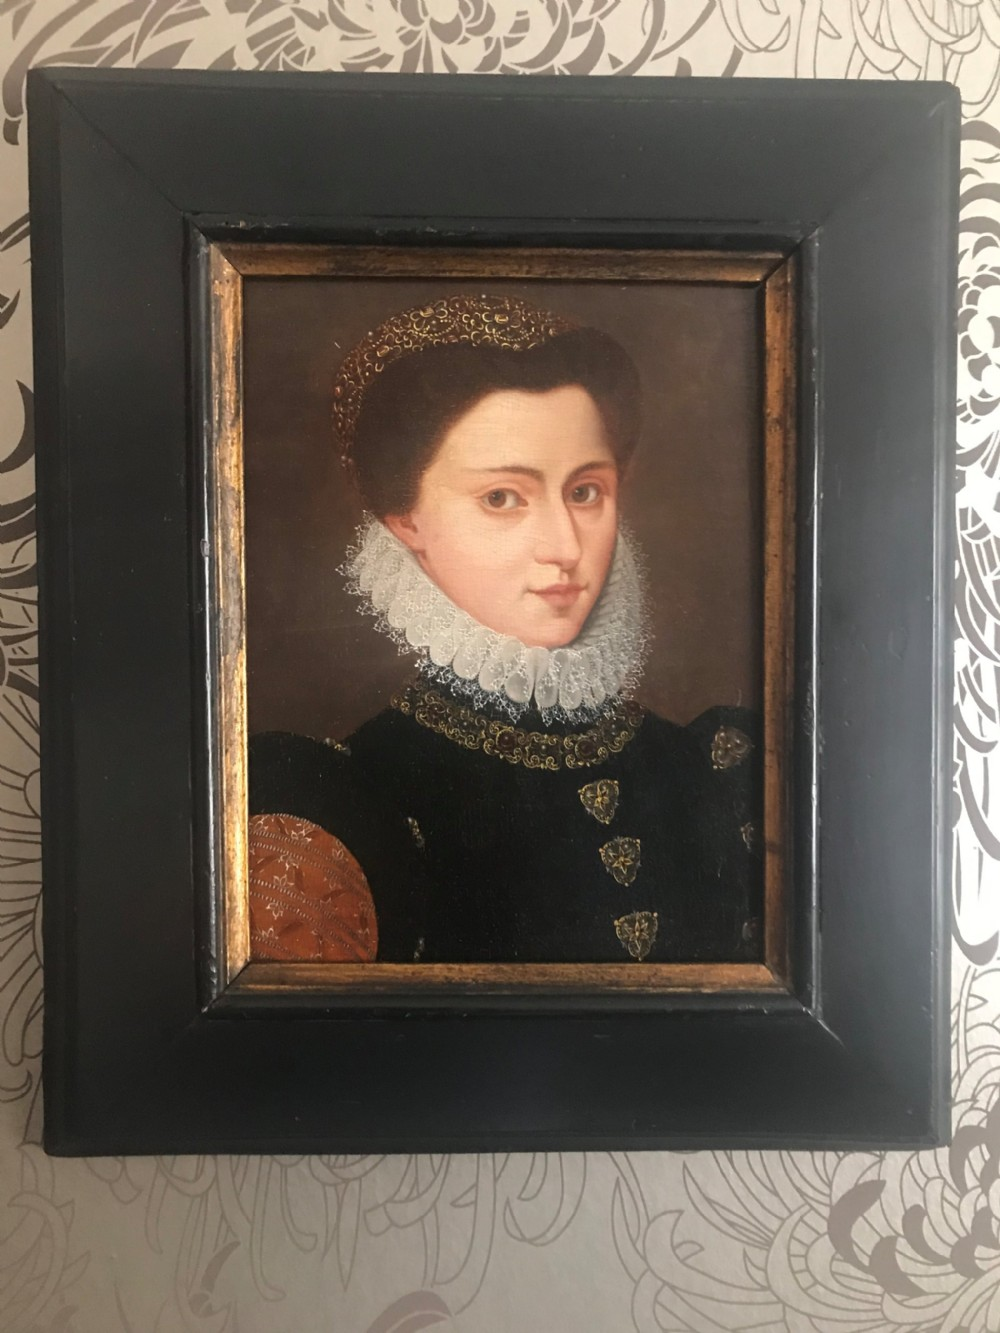 portrait of a noblewoman possibly mary queen of scots manner of francois clouet